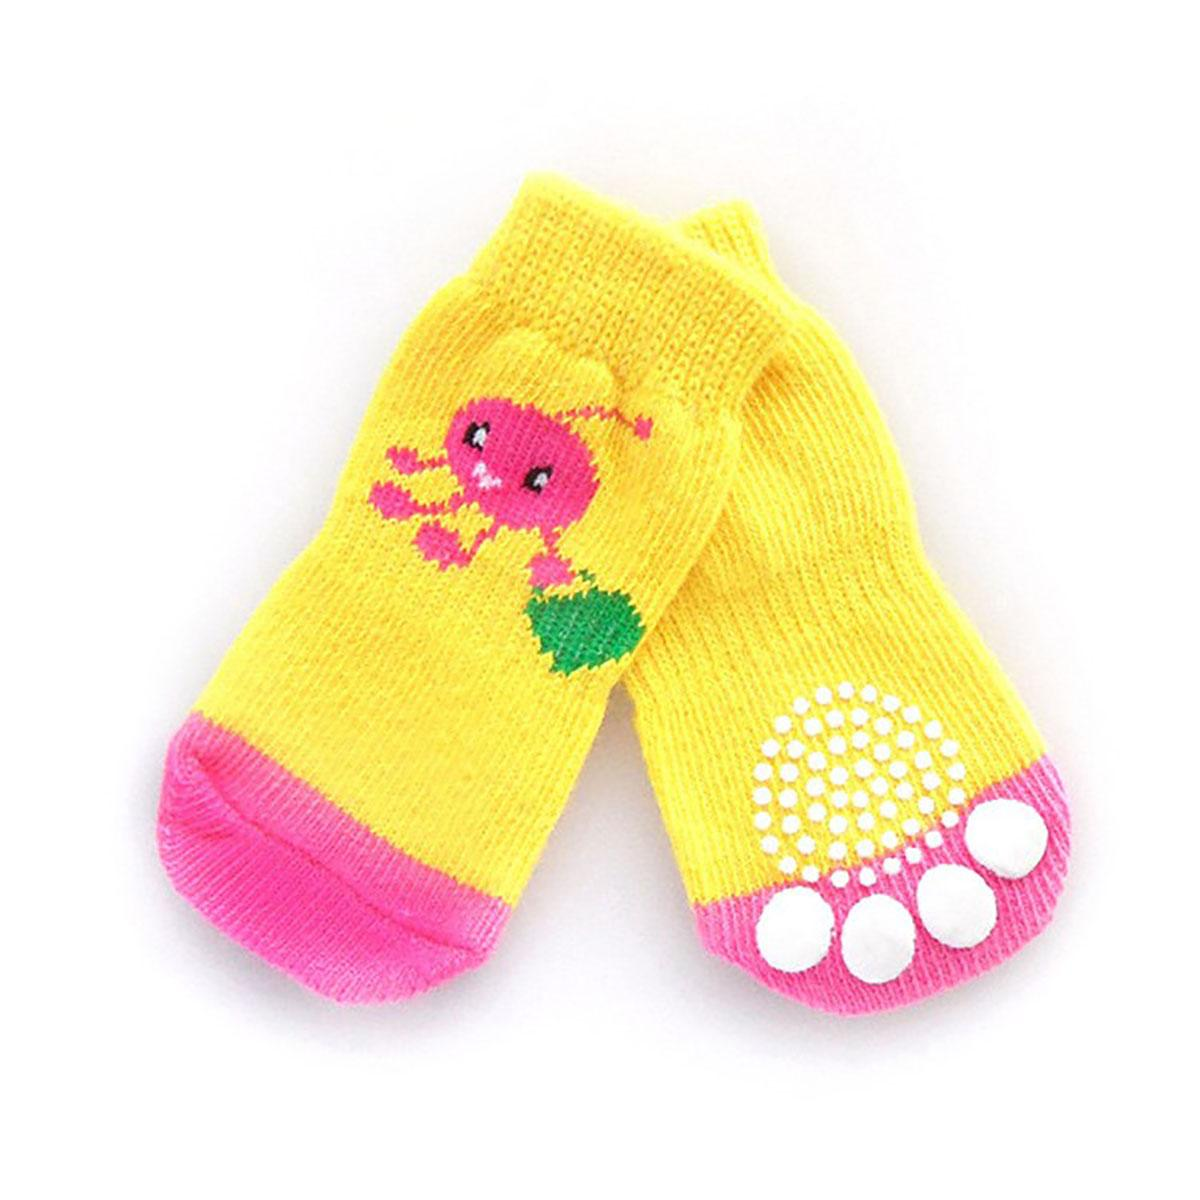 Doggy Socks - Pink Shopping Lady Bug